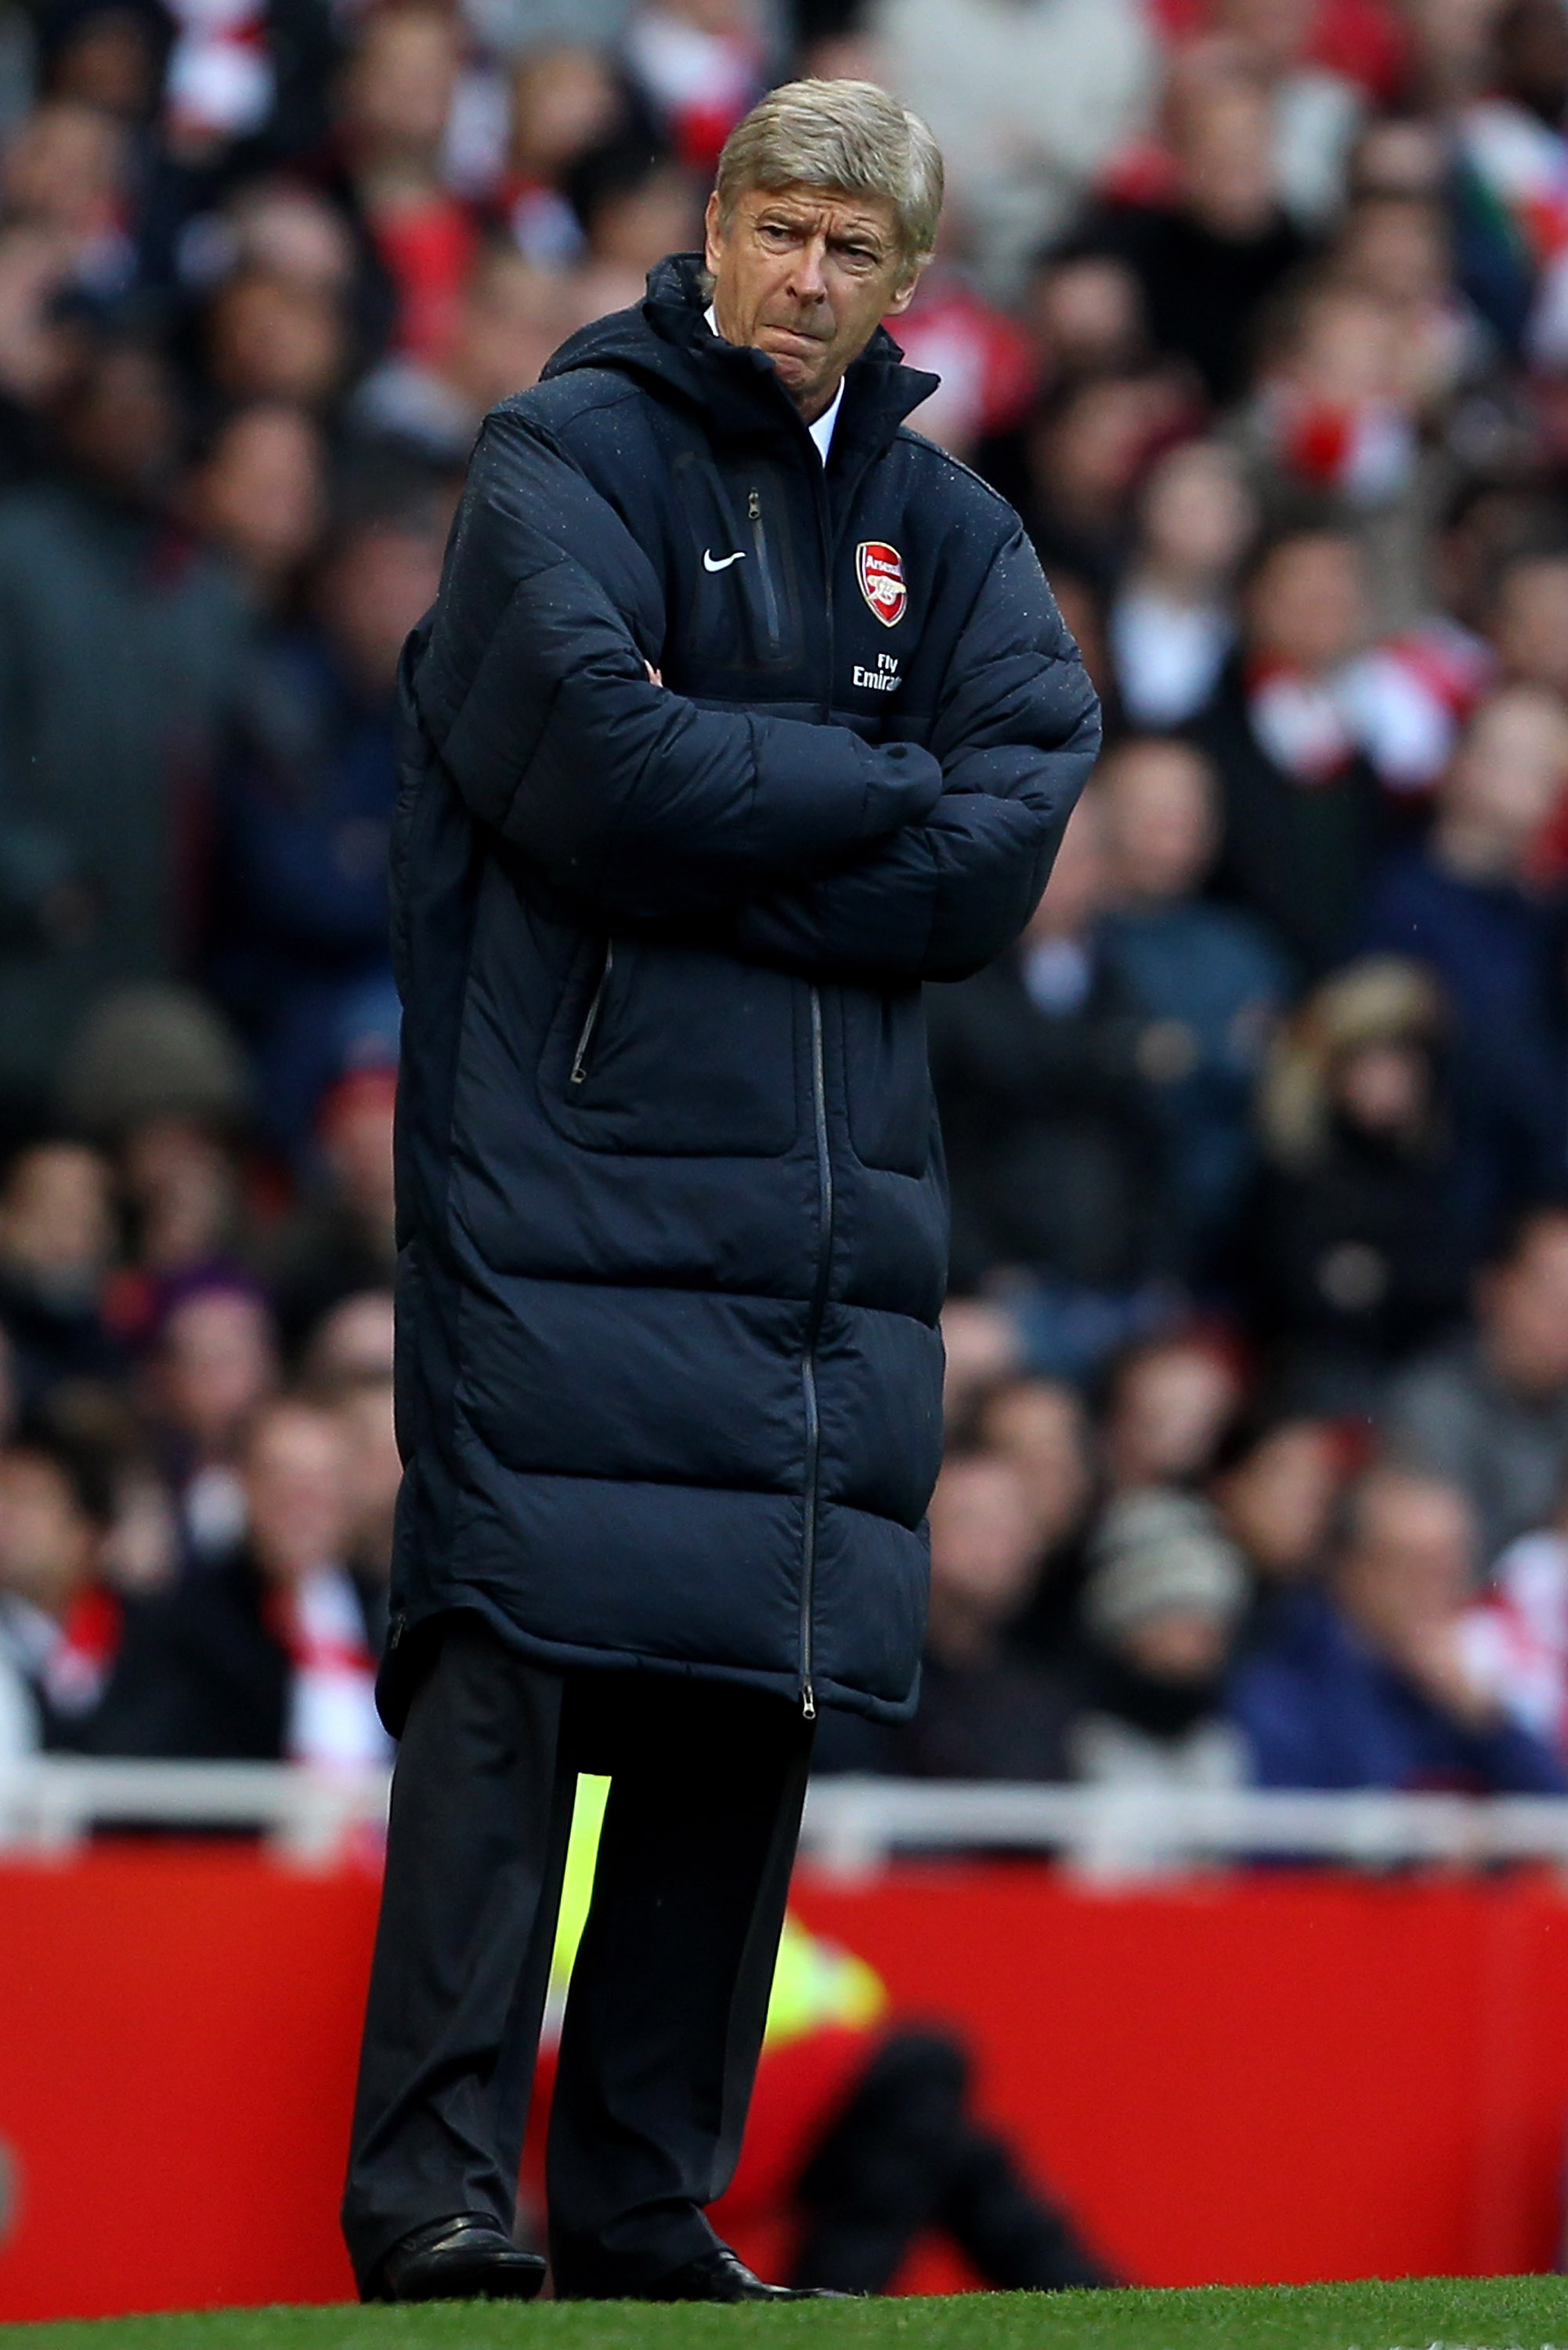 LONDON, ENGLAND - OCTOBER 30:  Manager Arsene Wenger looks on from the the touchline during the Barclays Premier League match between Arsenal and West Ham United at Emirates Stadium on October 30, 2010 in London, England.  (Photo by Clive Rose/Getty Image